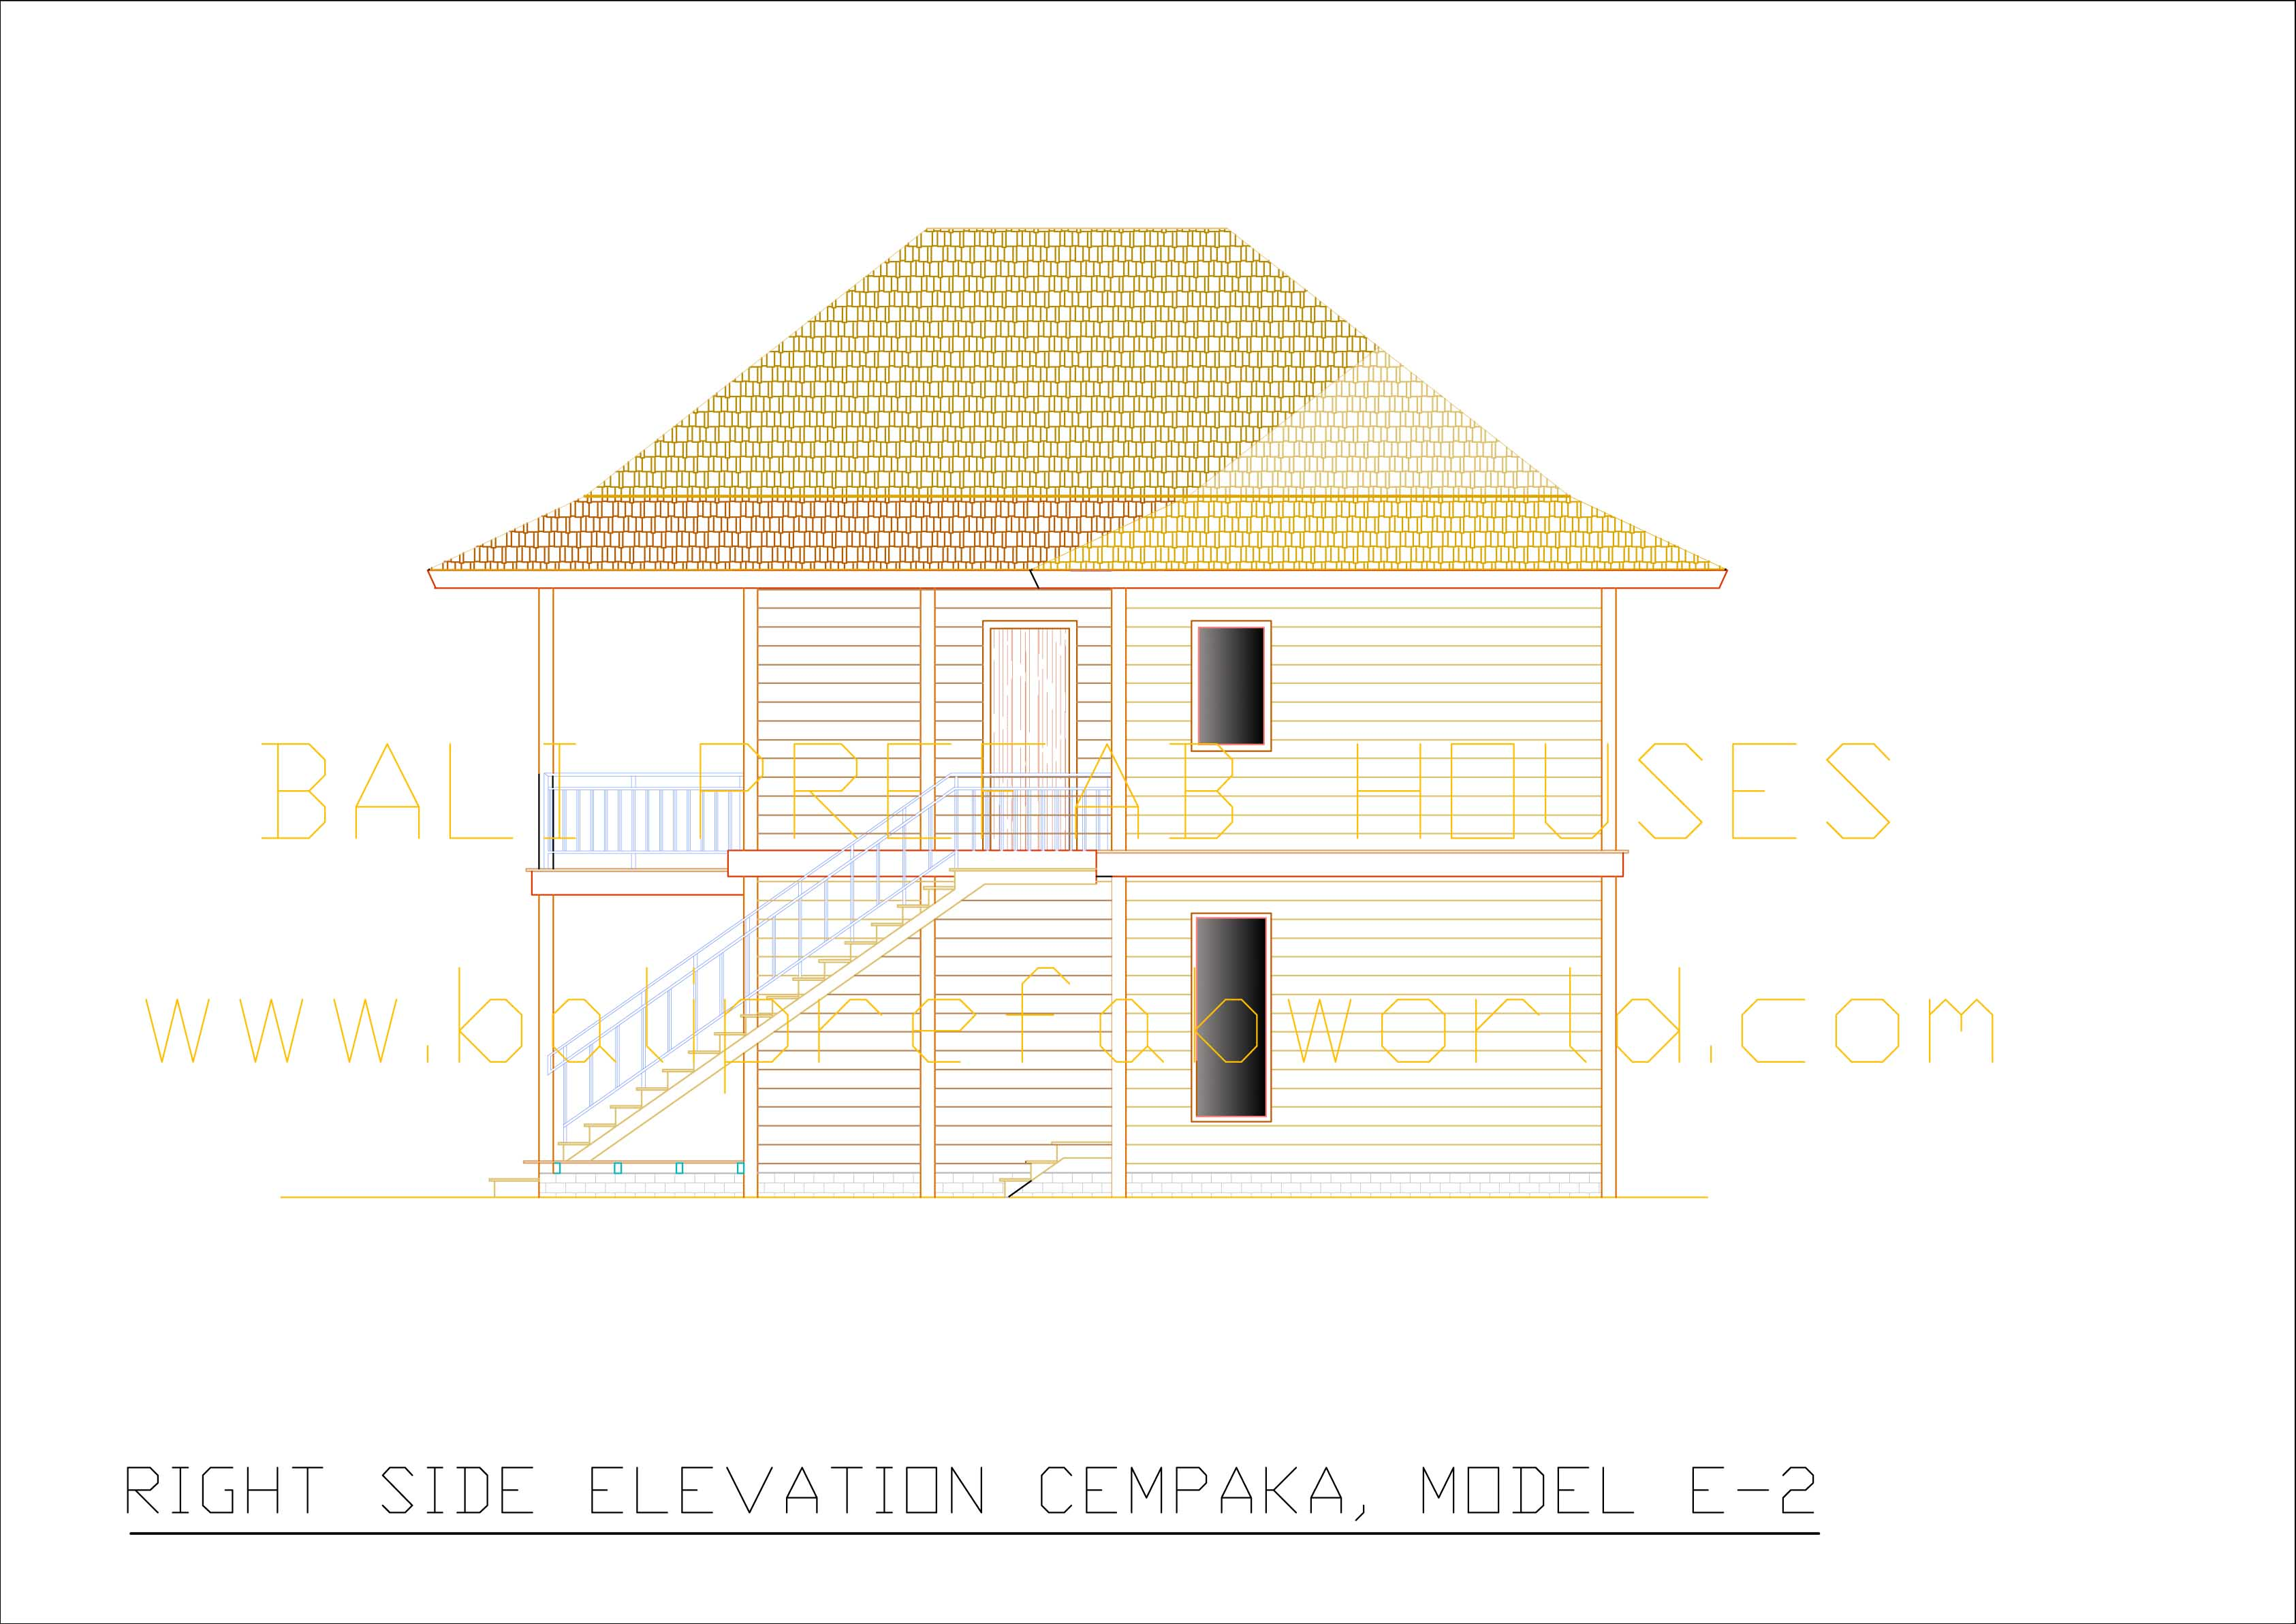 Cempaka right side elevation